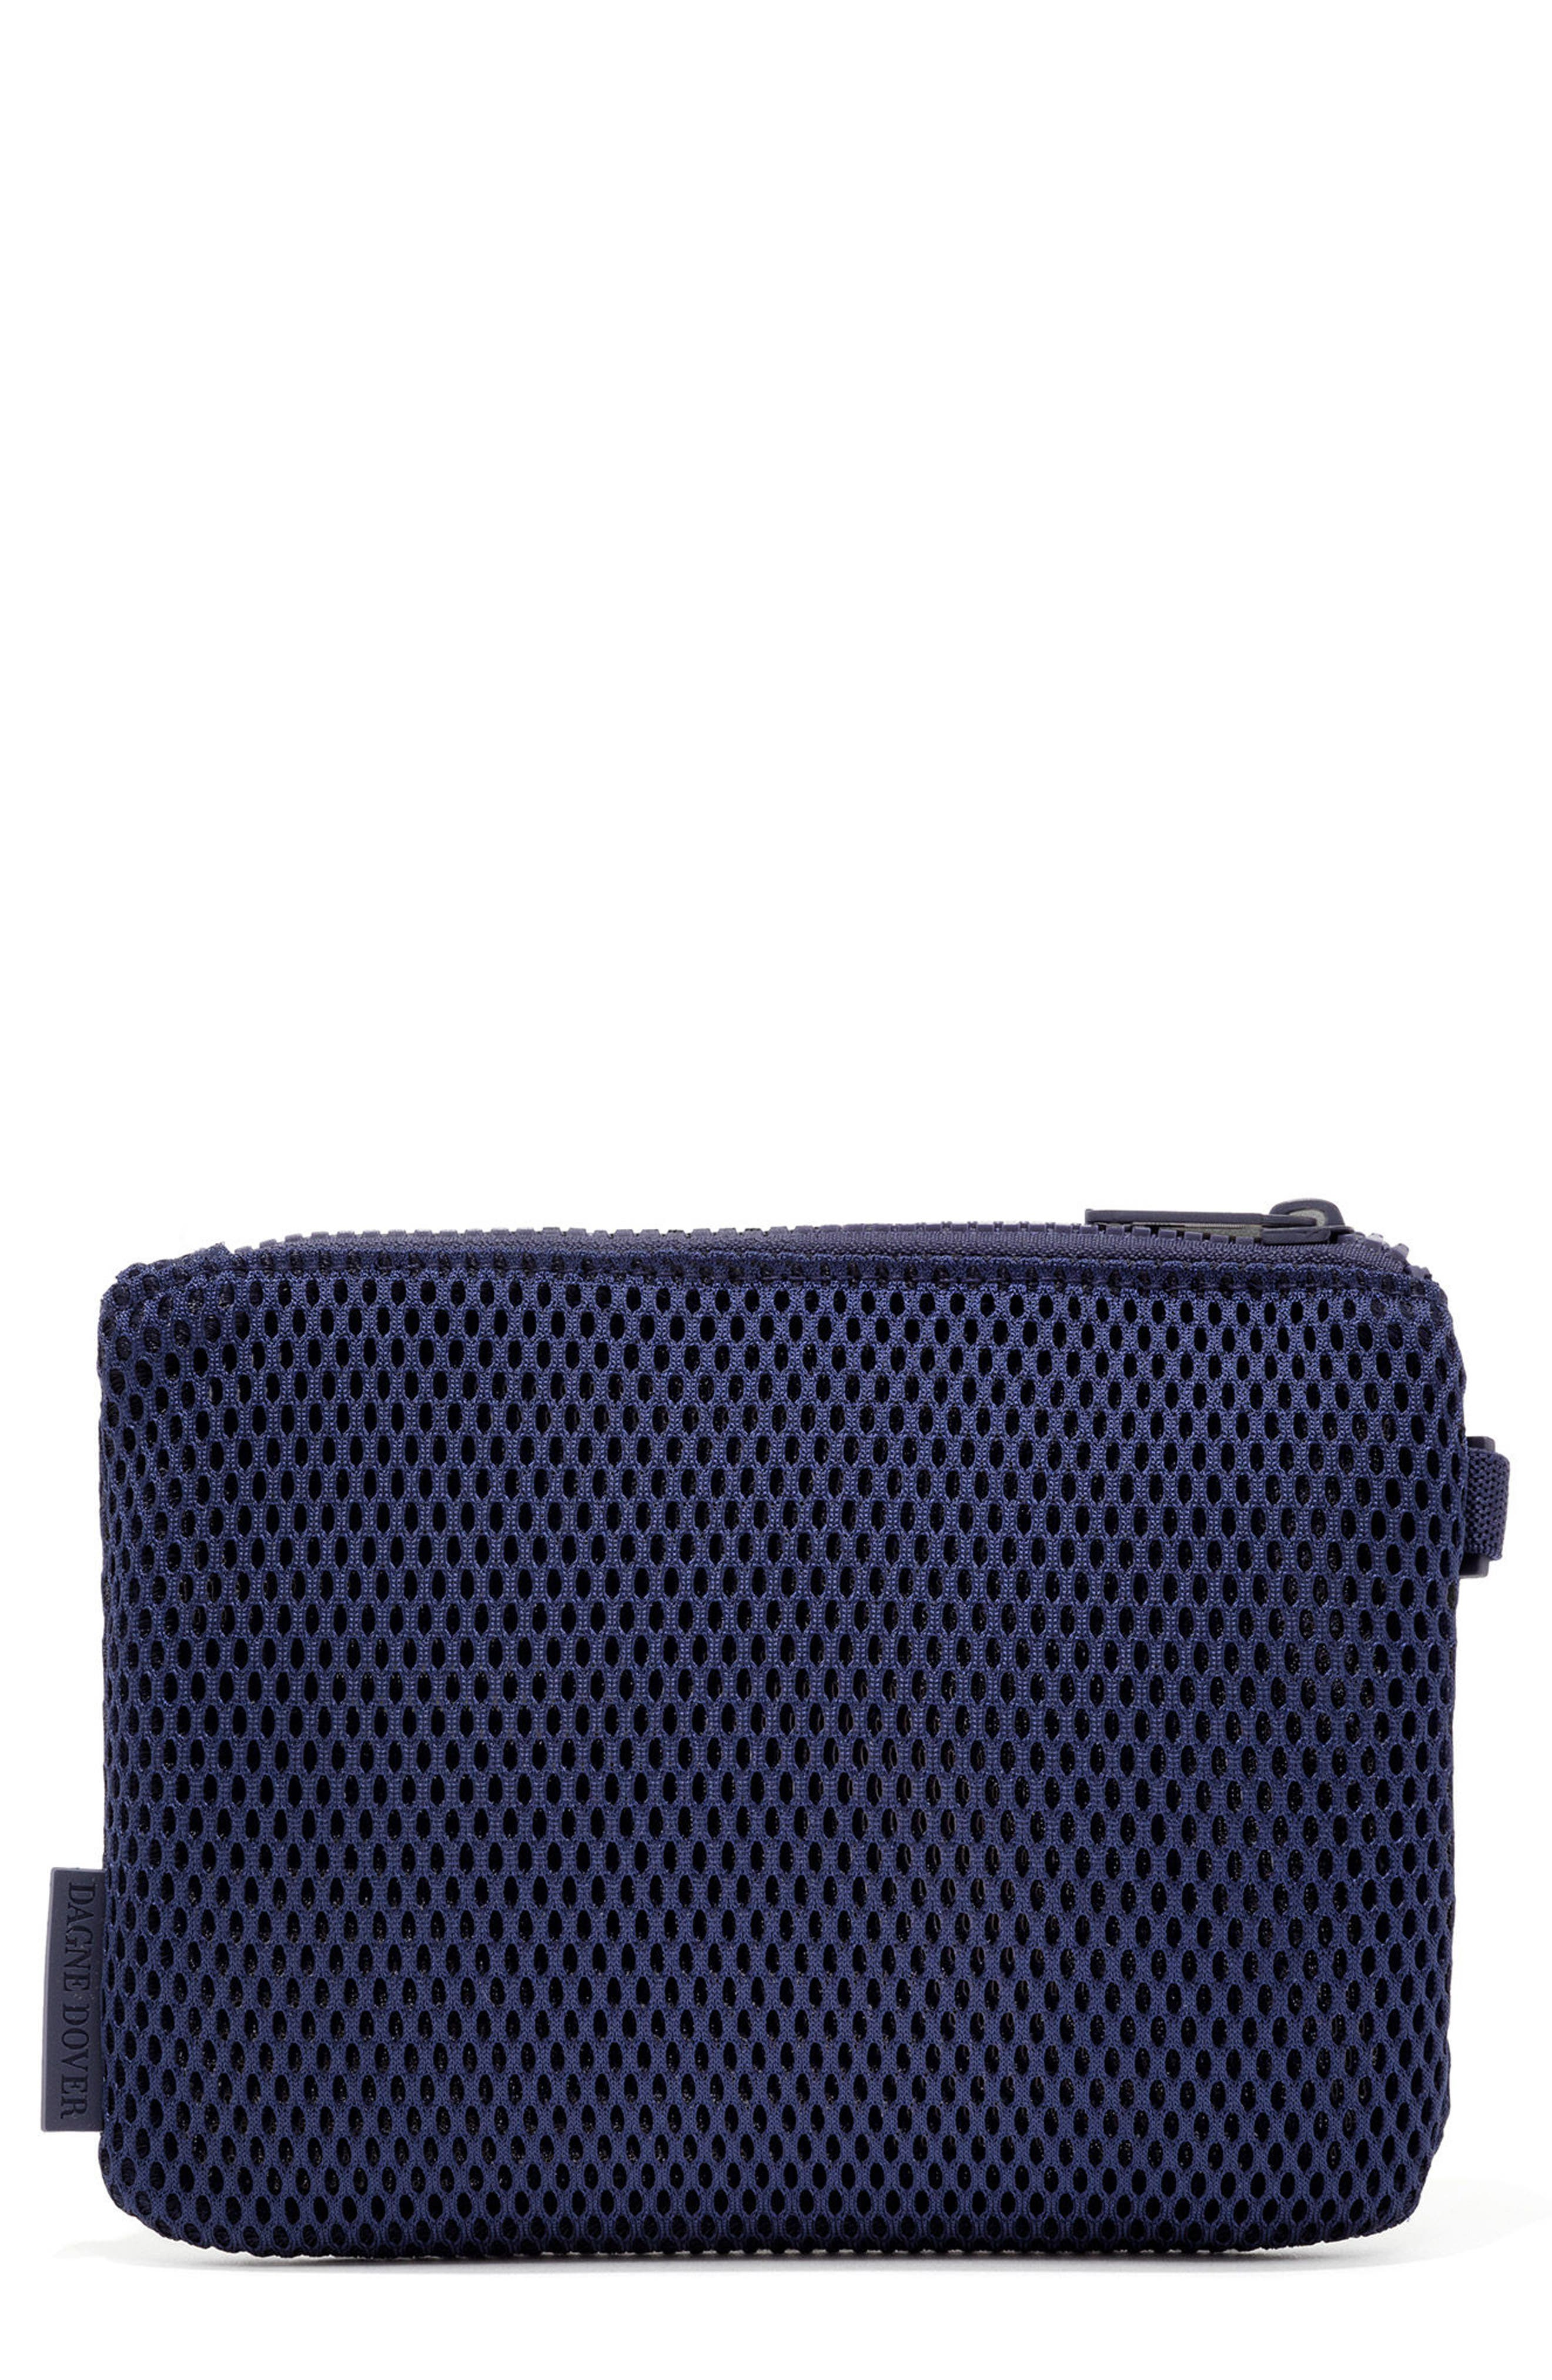 SMALL PARKER MESH POUCH - BLUE